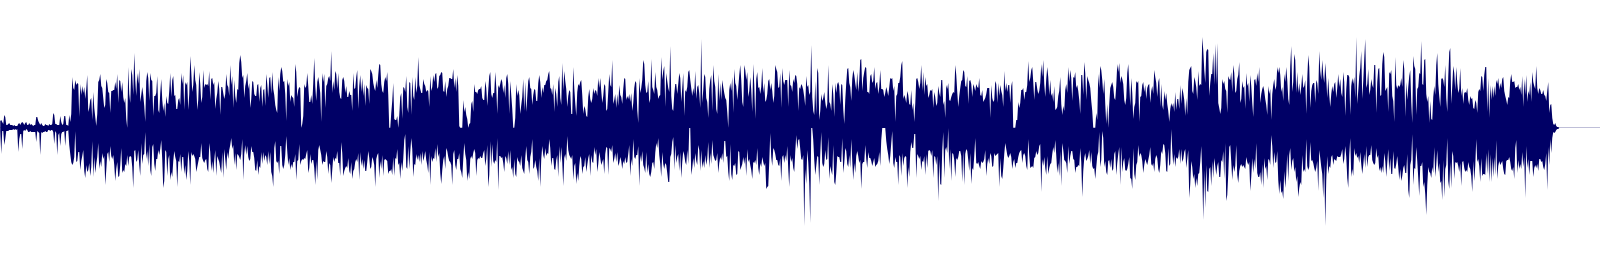 waveform of track #137669